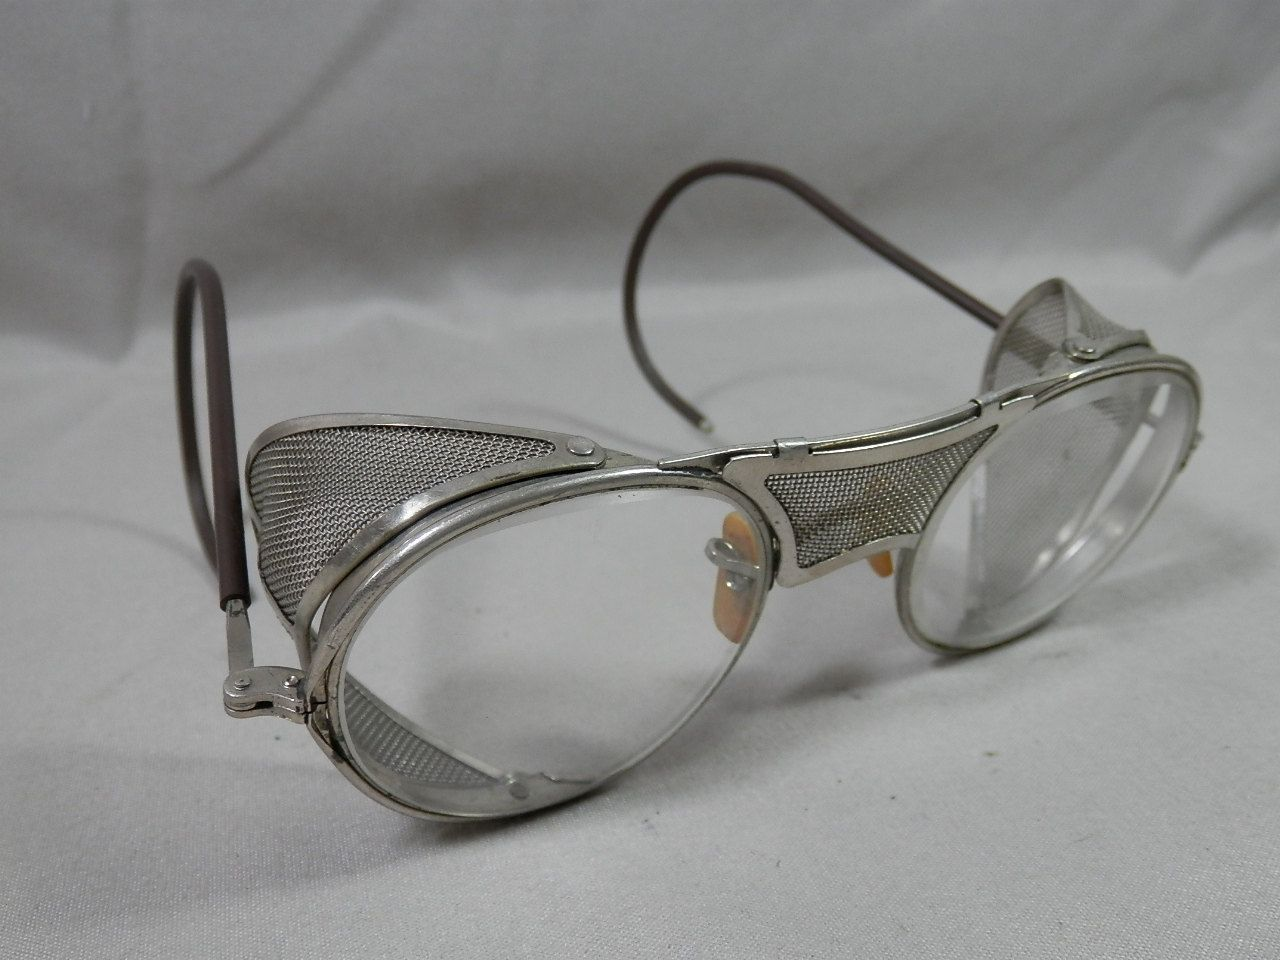 5928ecef557 Vintage Bausch and Lomb 22 47 Safety Glasses Mesh Motorcycle Googles Steam  Punk by CaymanHillDesigns on Etsy